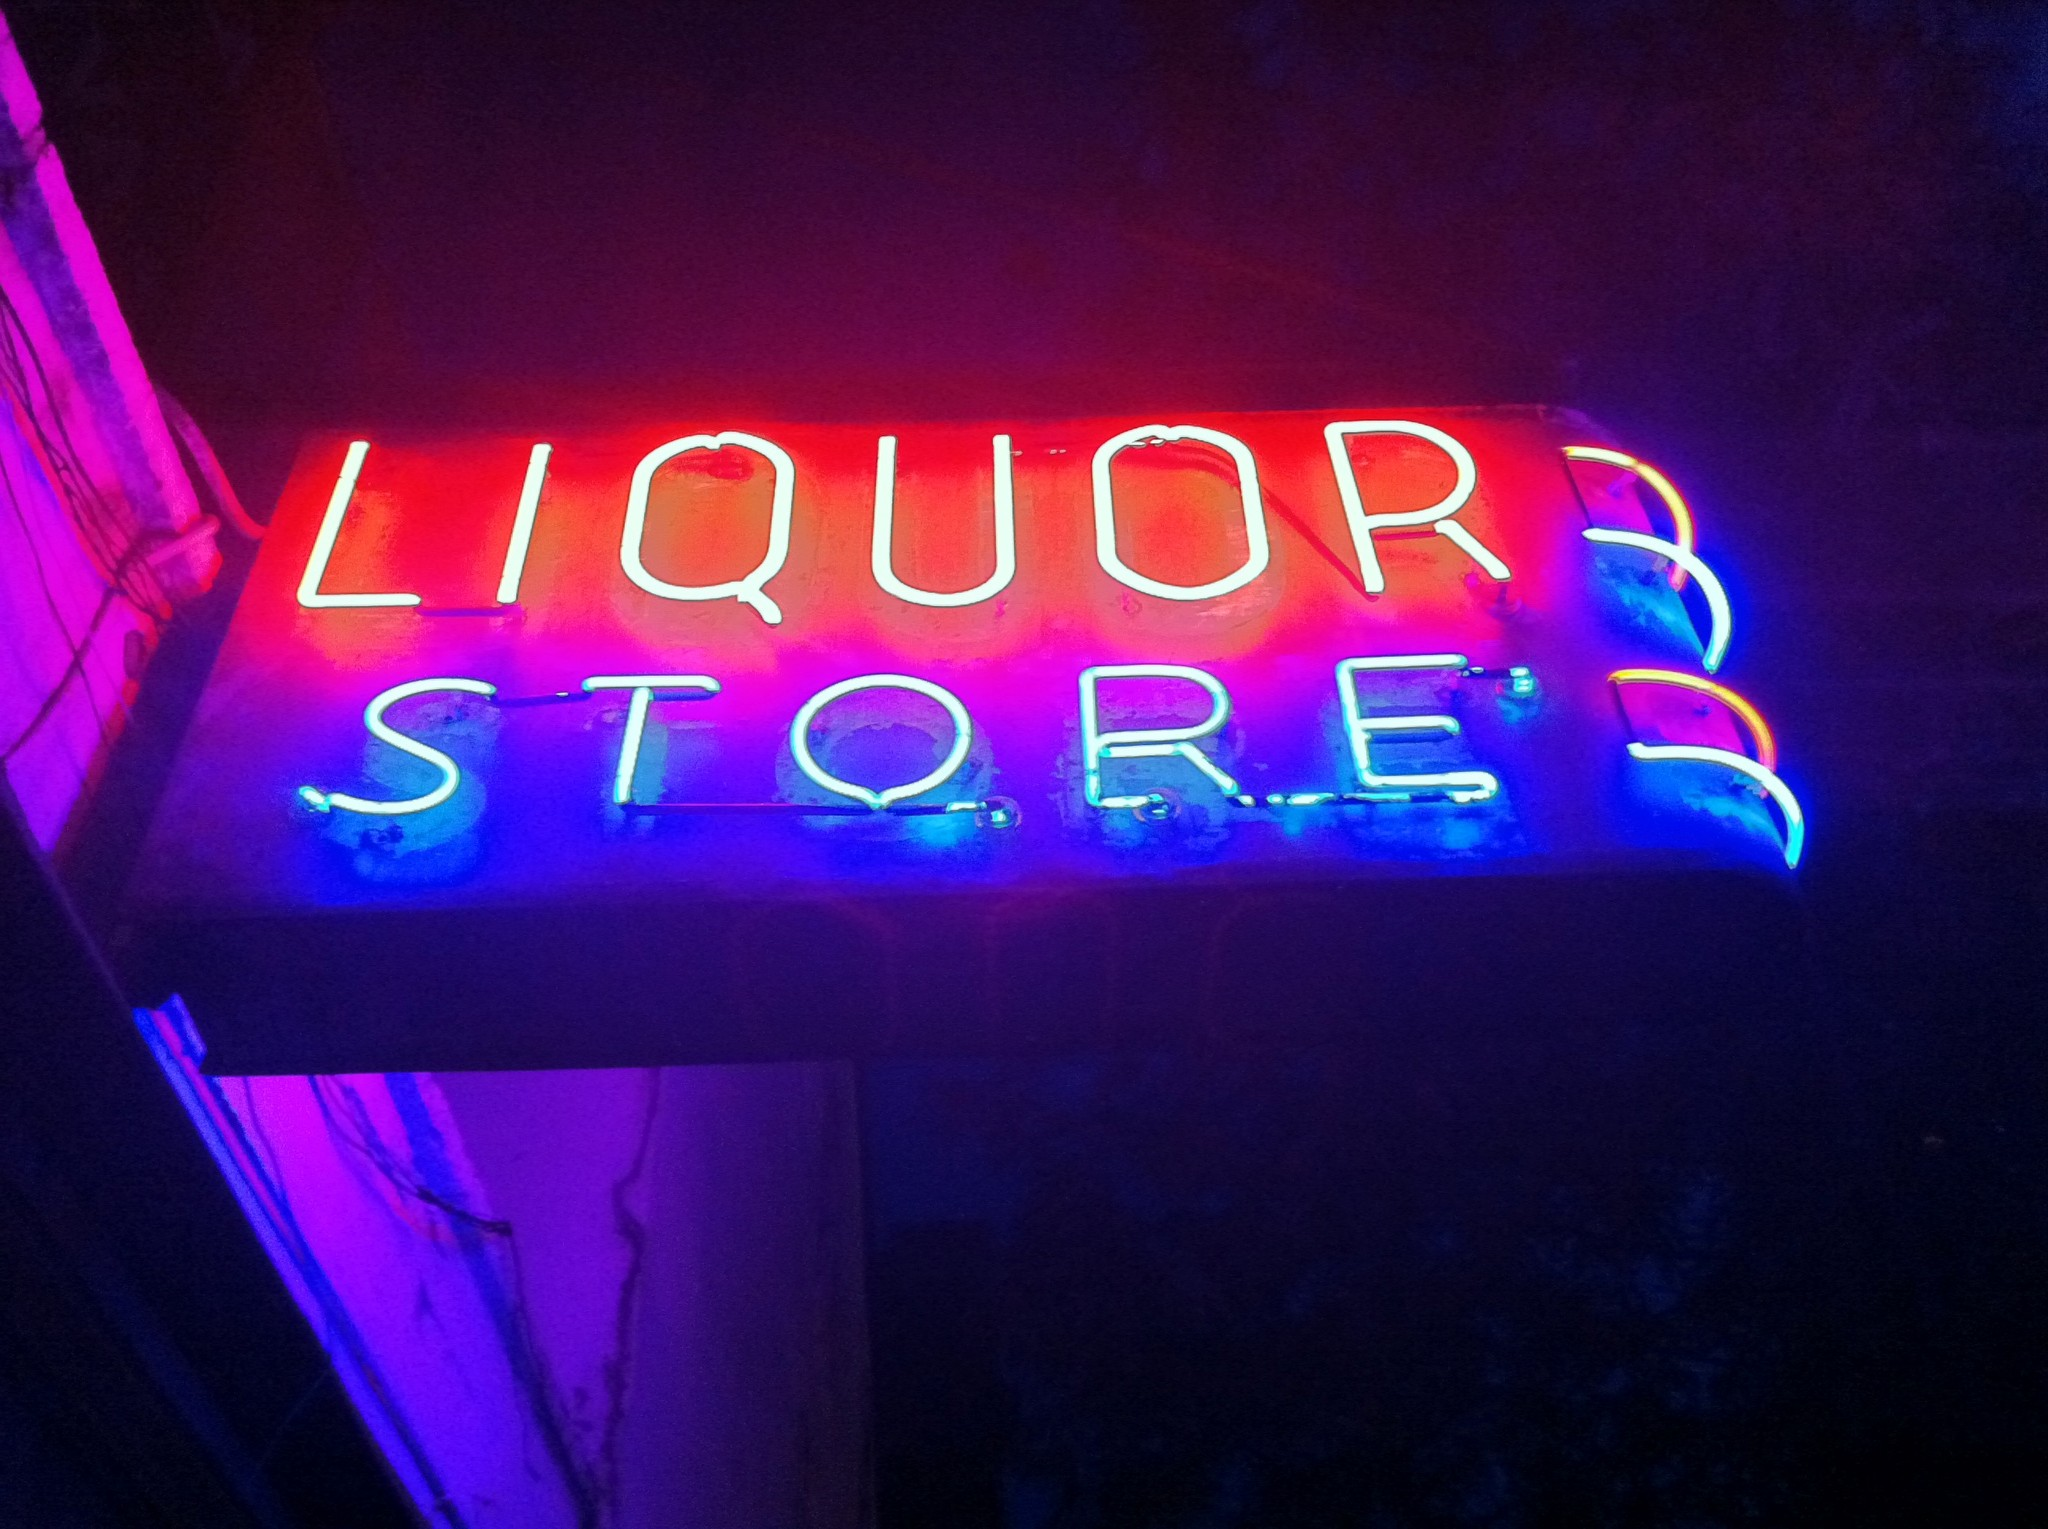 FEATURED LISTING: Liquor store with Property - Confidential Listing